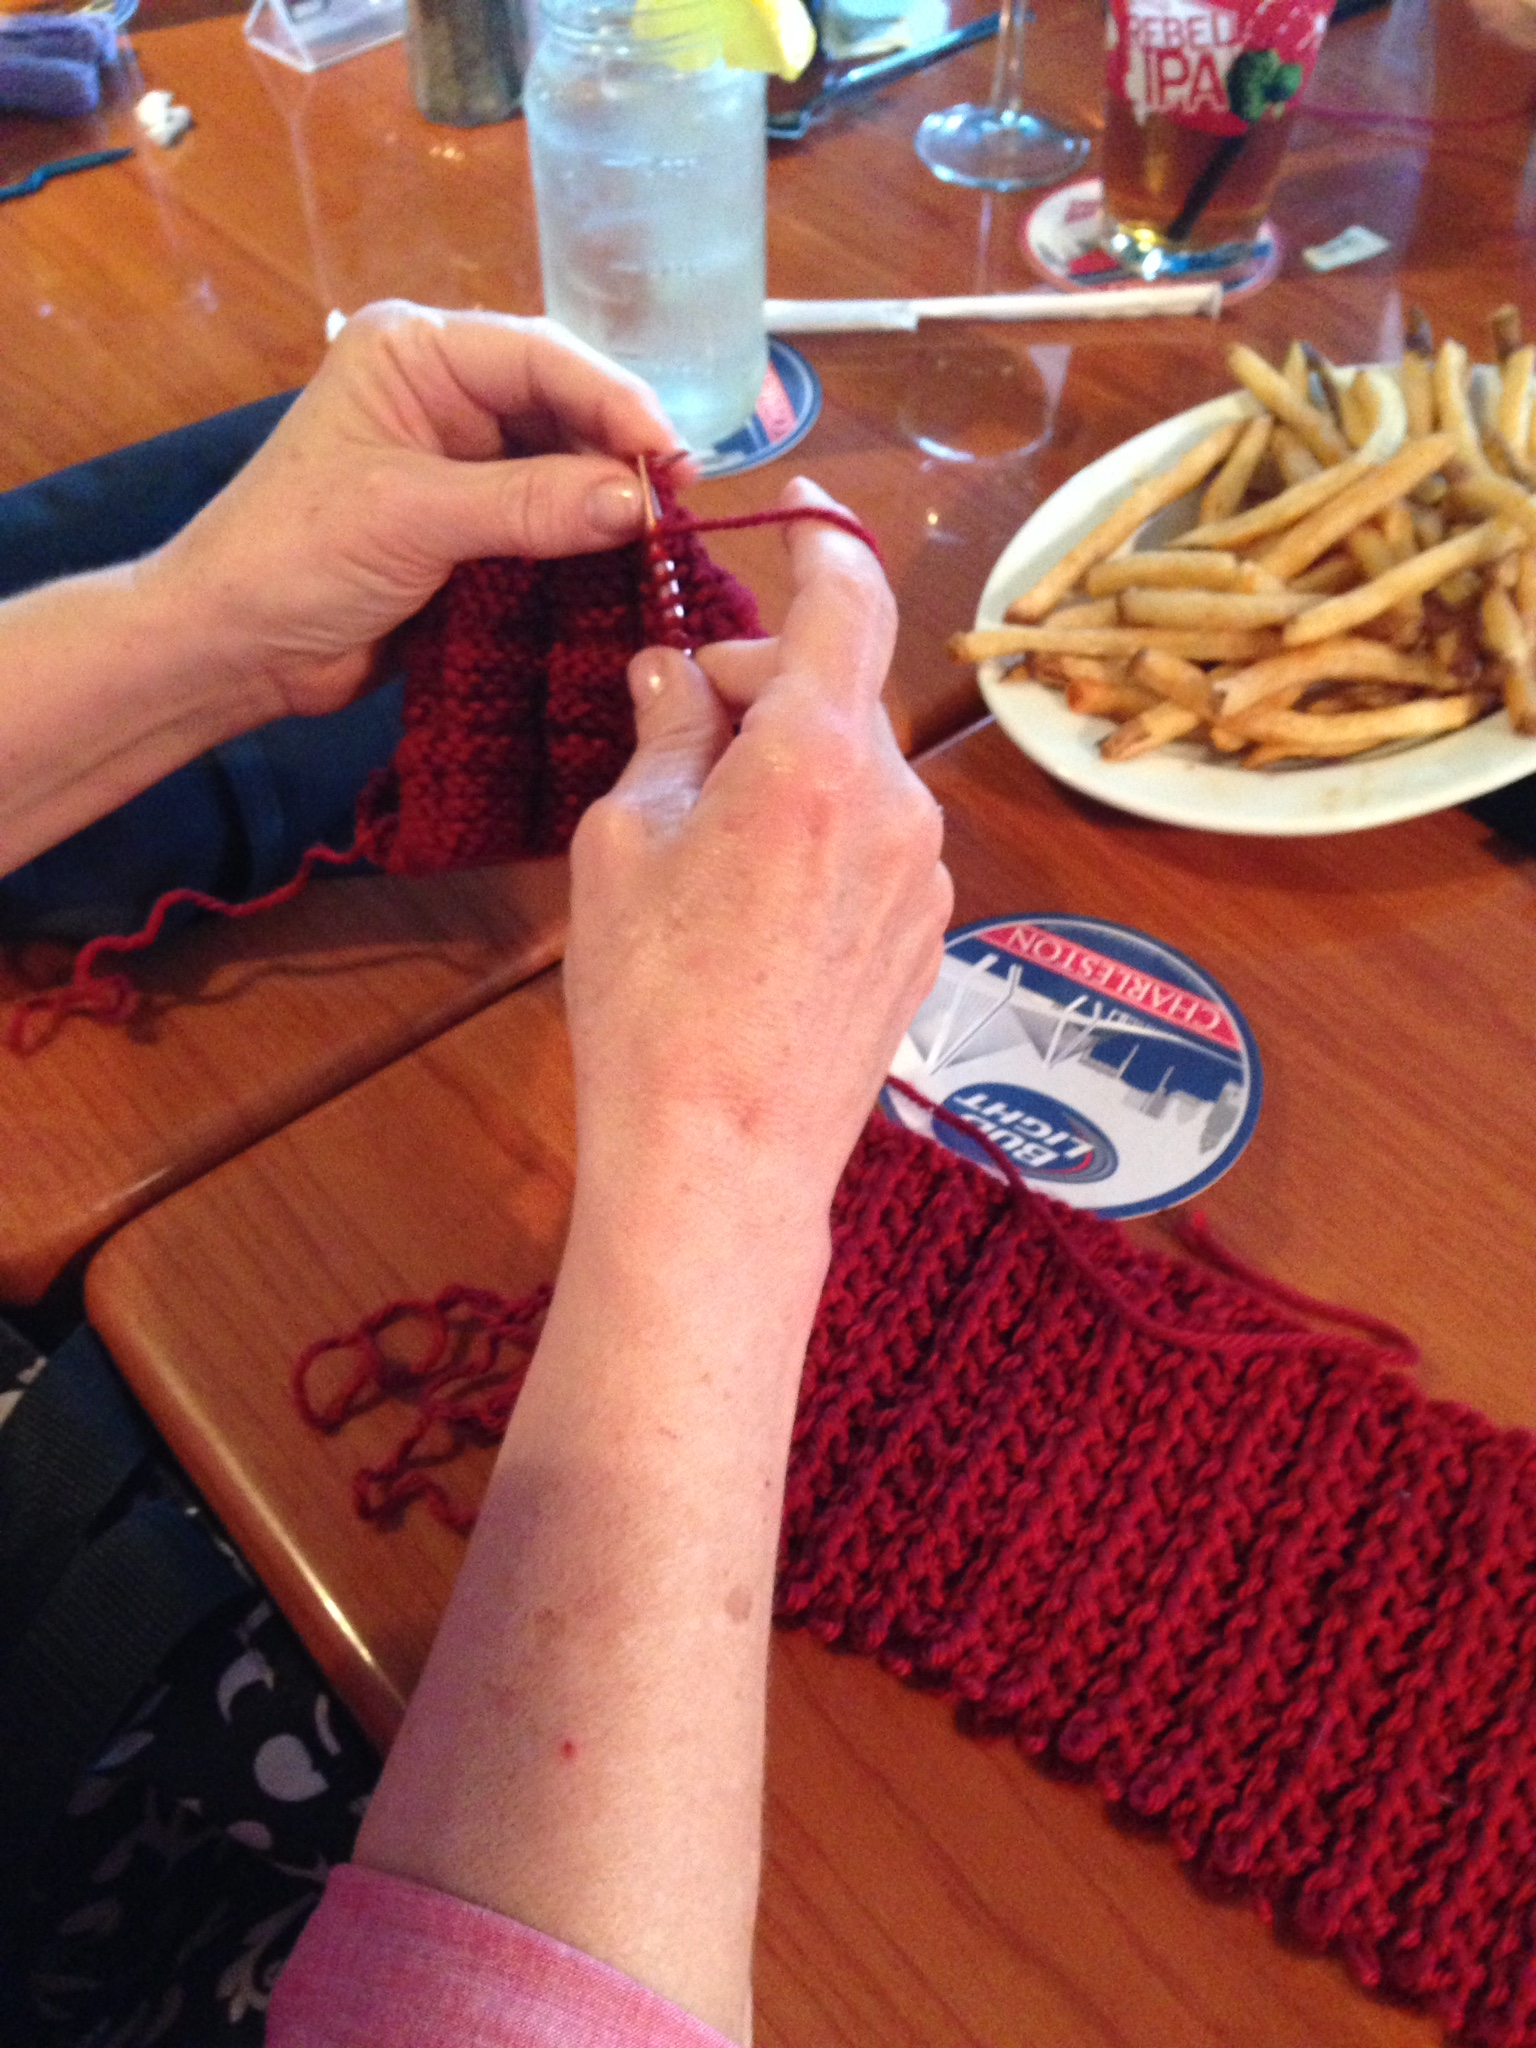 Want to unravel something and knit something new? Why waste time on making a new ball when you can just knit from the old piece!